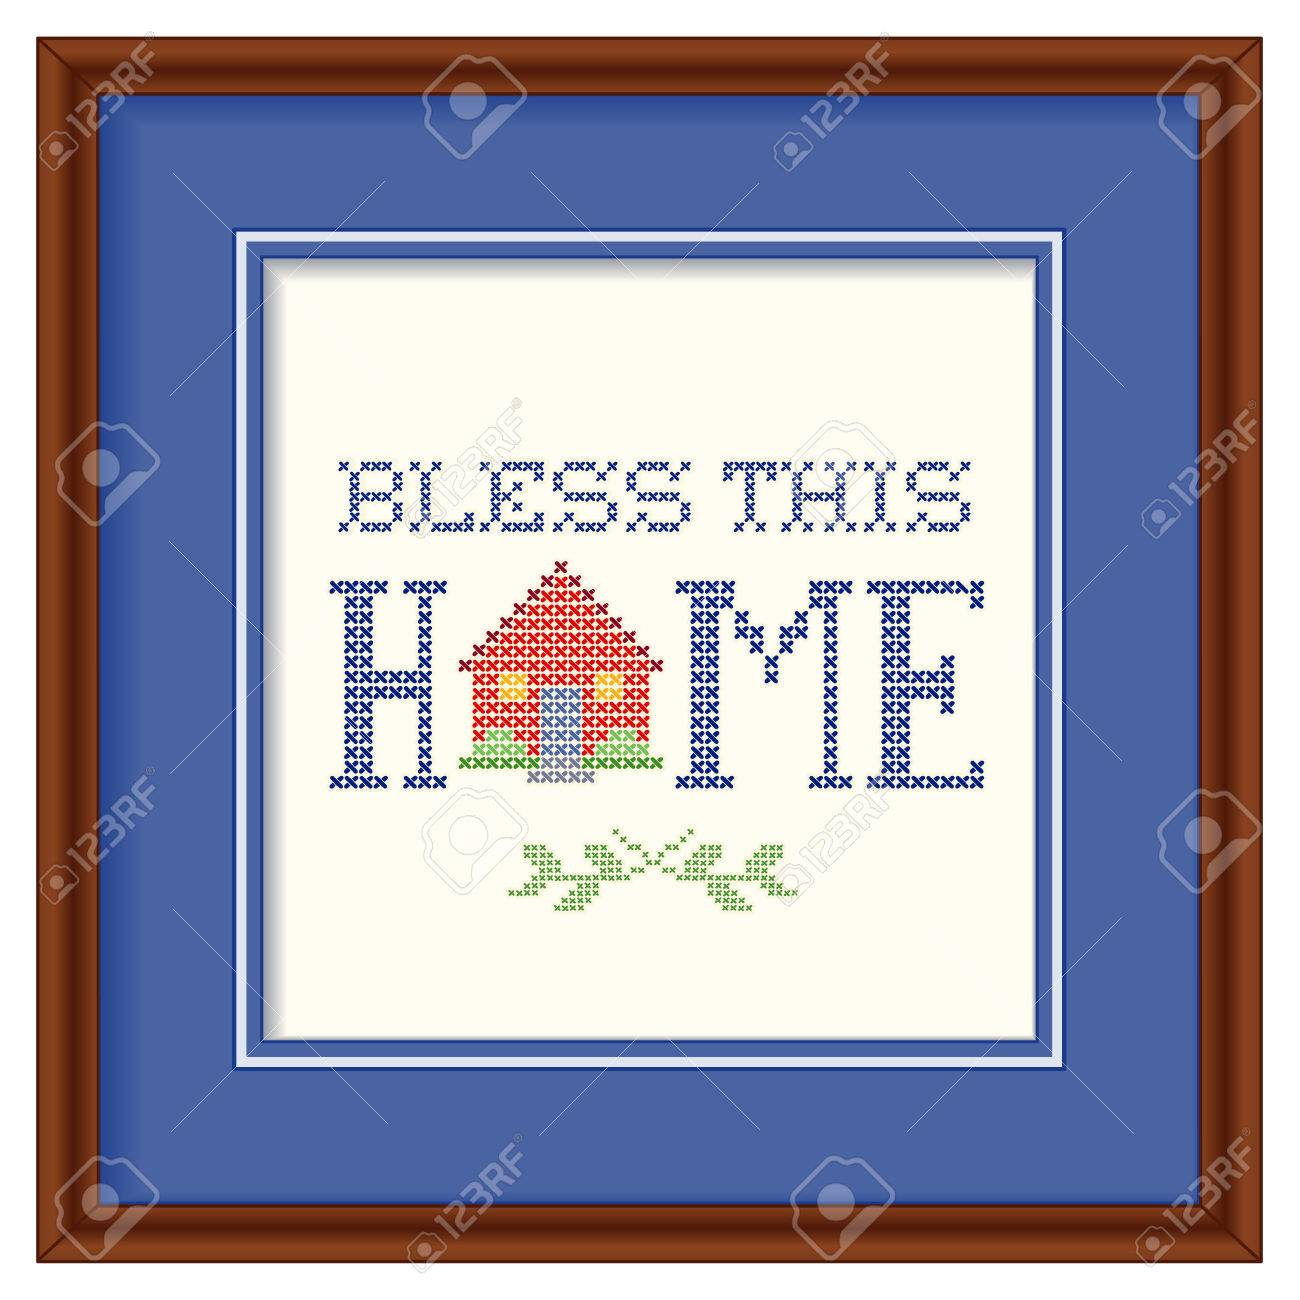 Bless This Home Retro Cross Stitch Embroidery Design, Needlework ...